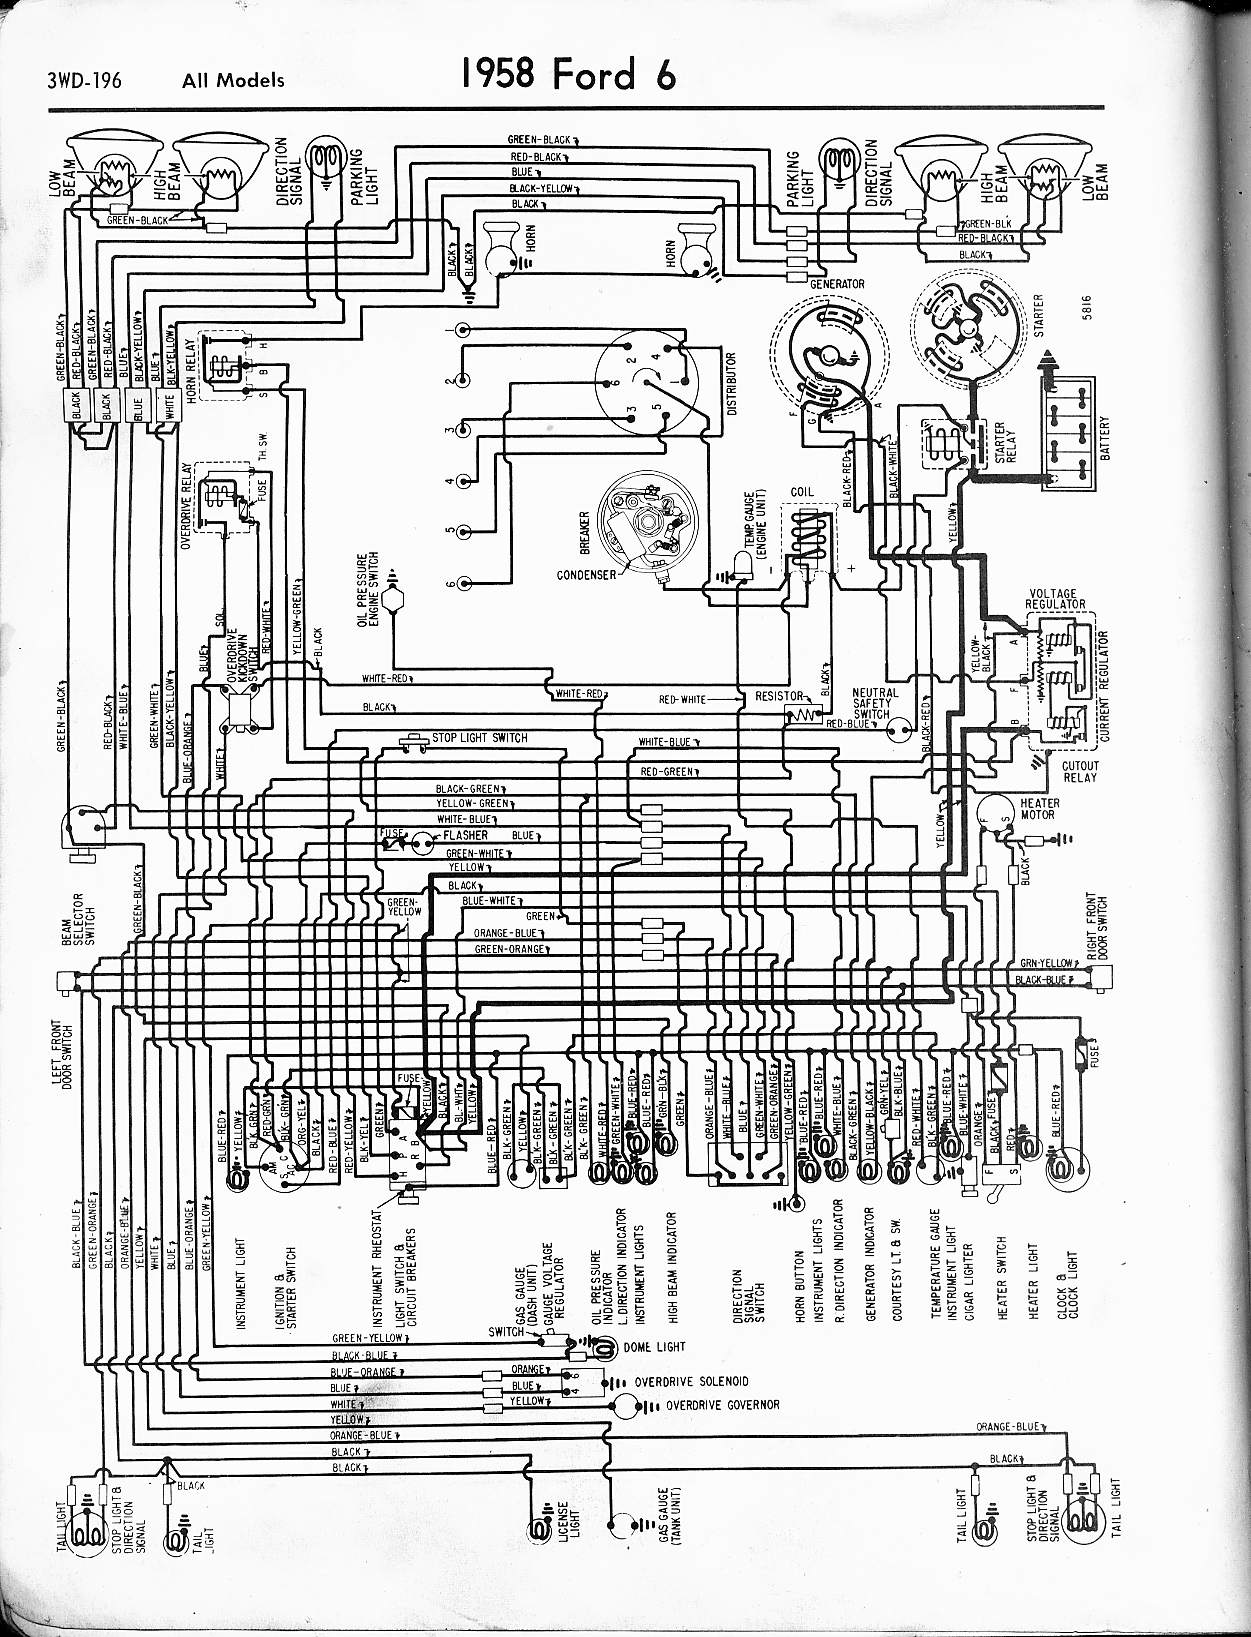 1948 ford f1 panel truck wiring diagram free vehicle wiring diagrams u2022 rh generalinfo co